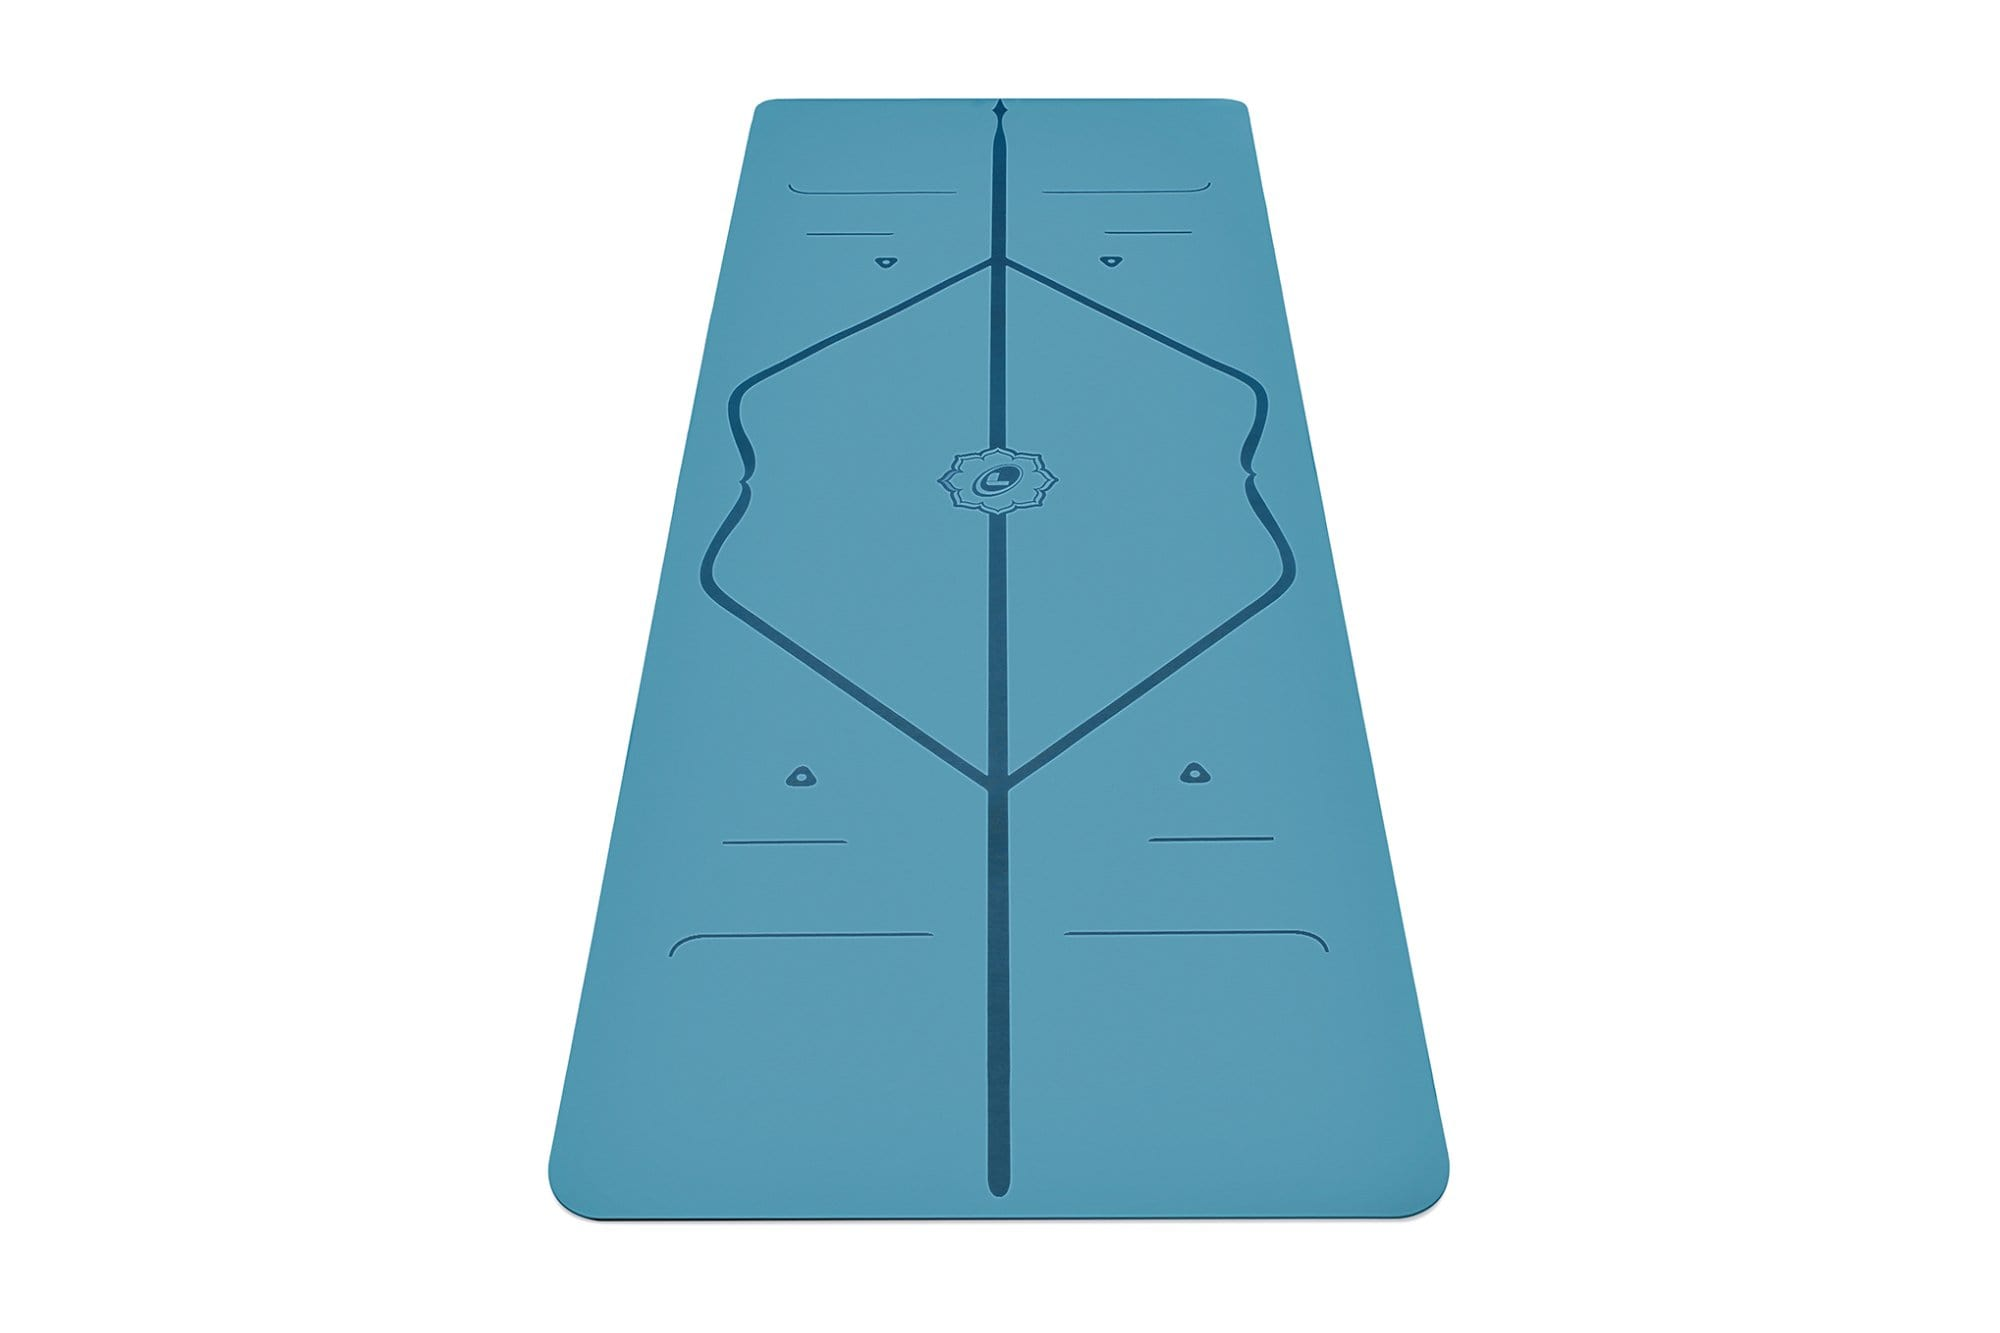 Portrait view of blue Yoga mat from Liforme